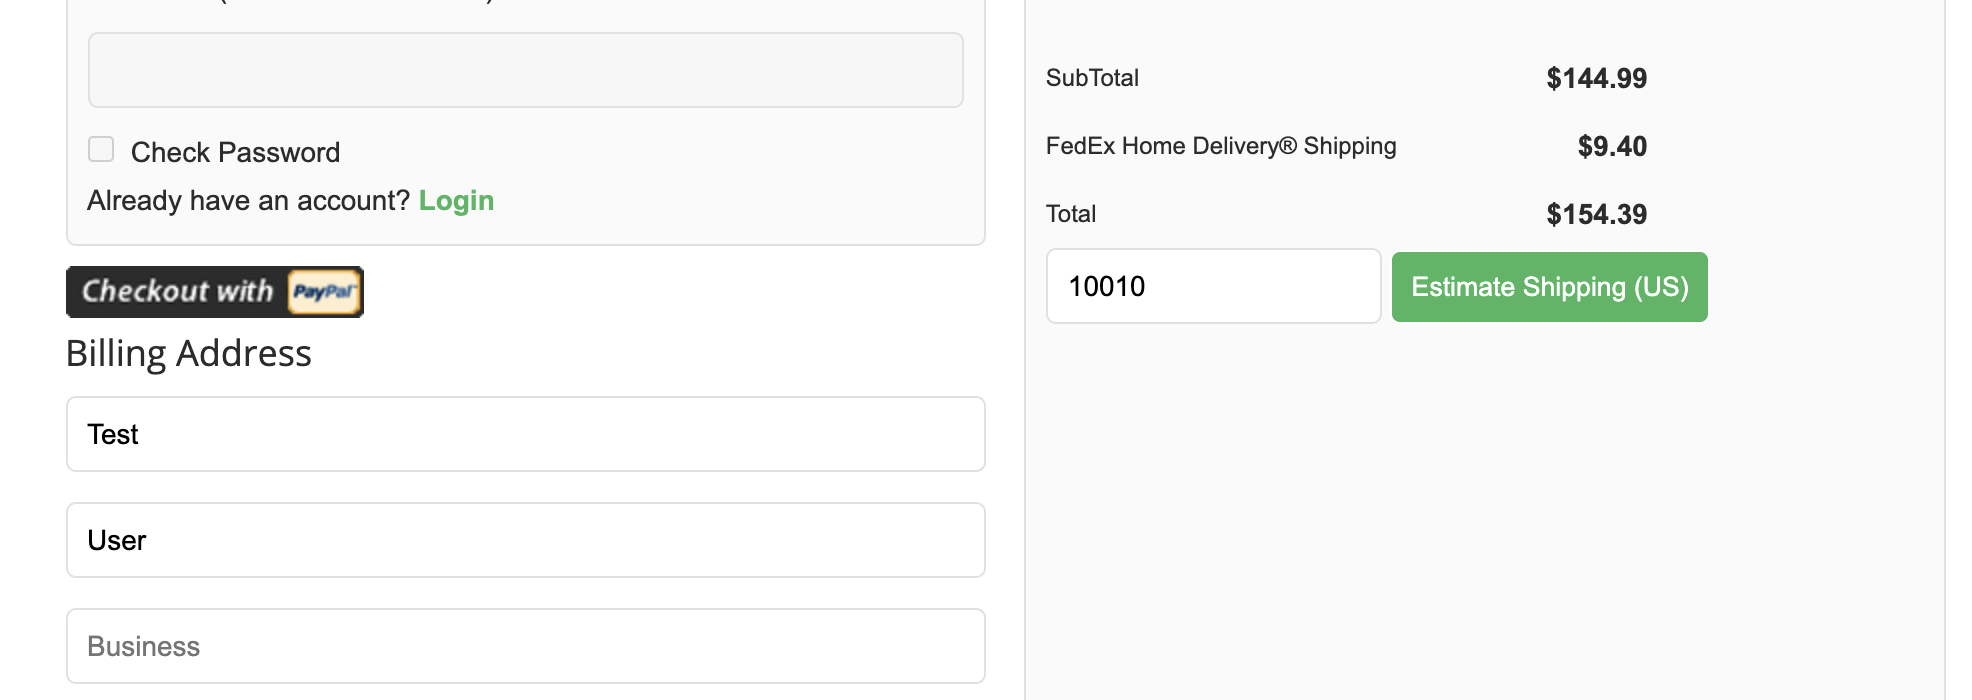 Storefront FedEx Home Delivery